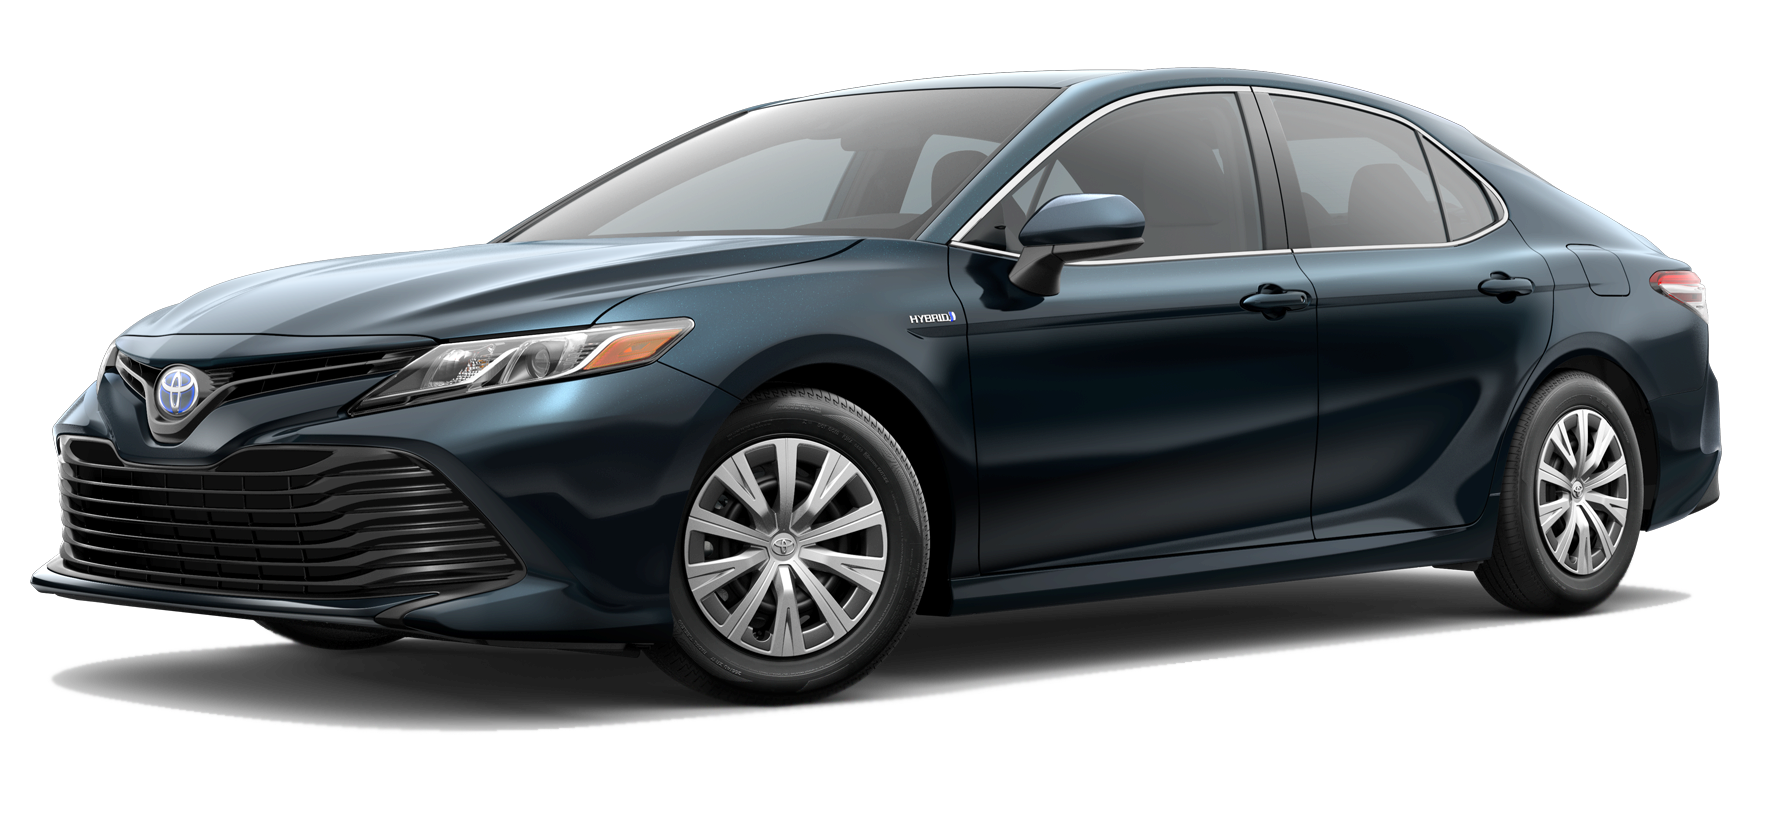 Toyota Highlander Lease >> 2018 Toyota Camry Hybrid Current Offer - Toyota Lease 4 Less